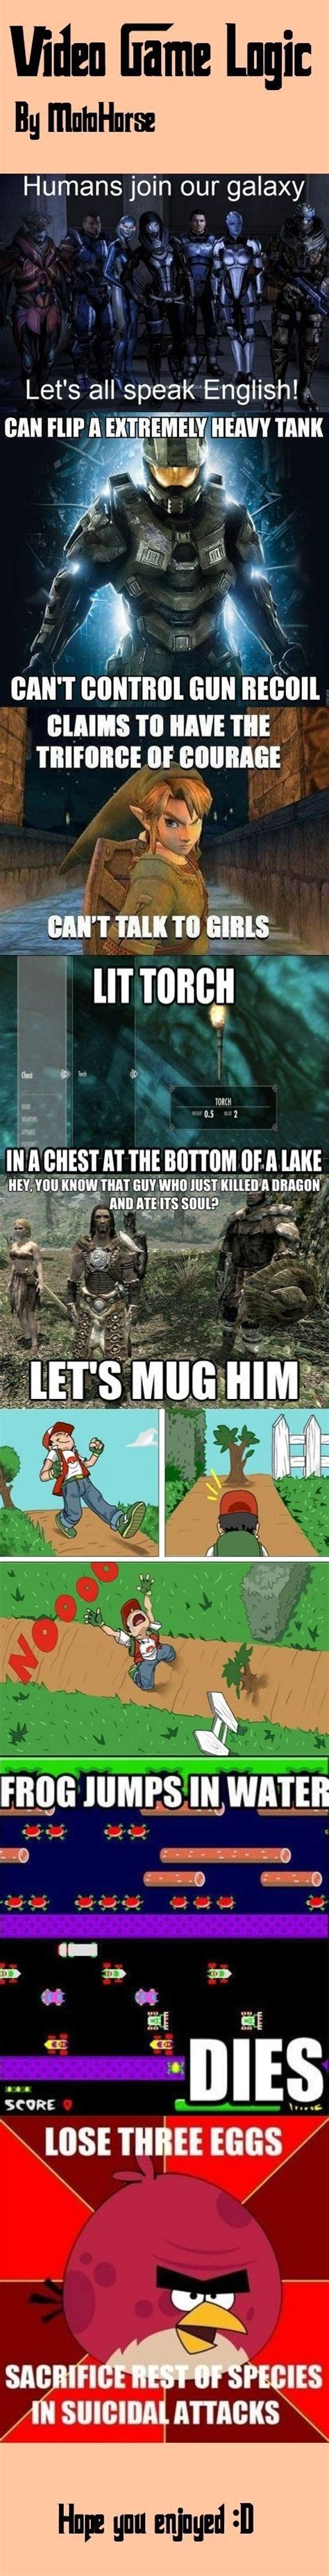 Game Logic Meme - video game logic www meme lol com video games pinterest the o jays videos and lol